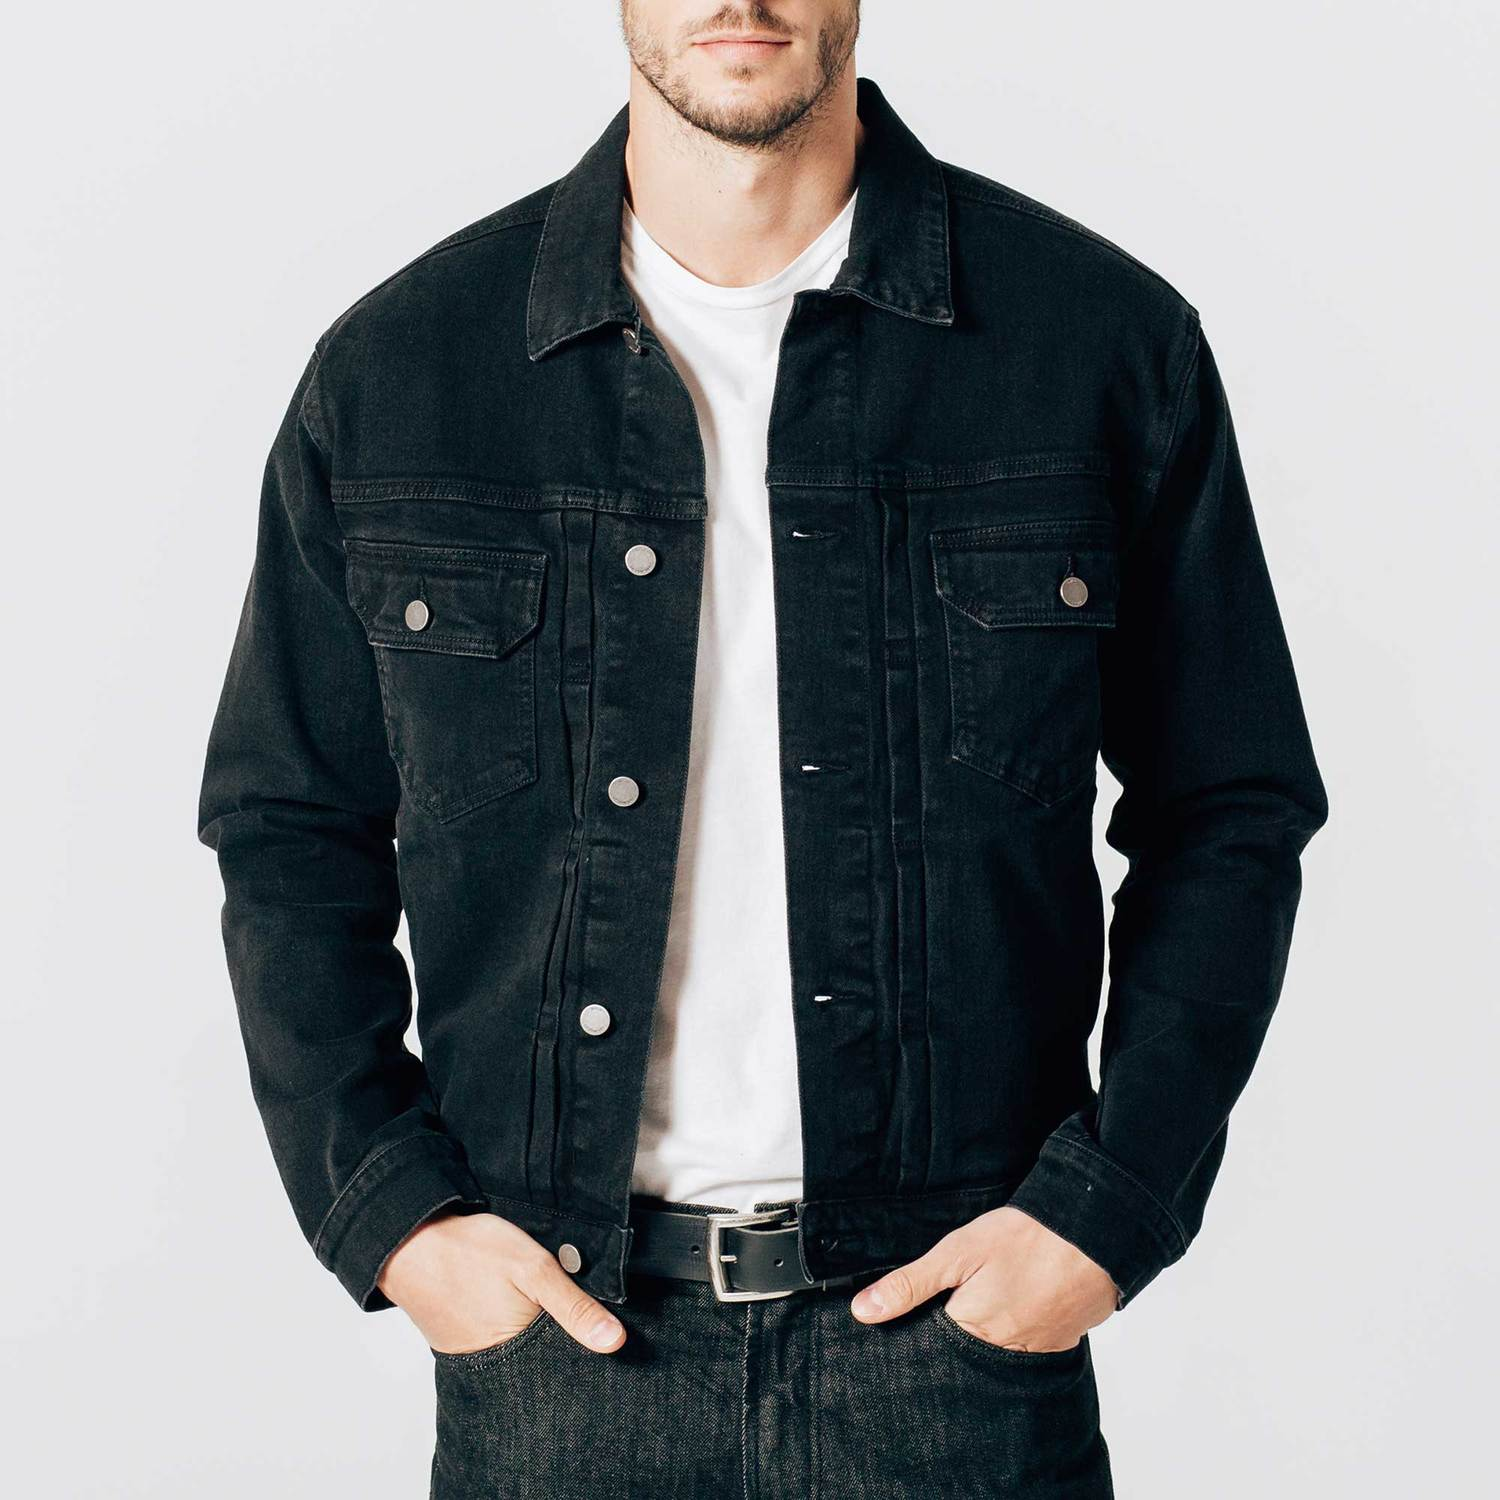 Free shipping and returns on Men's Denim Coats & Jackets at humorrmundiall.ga